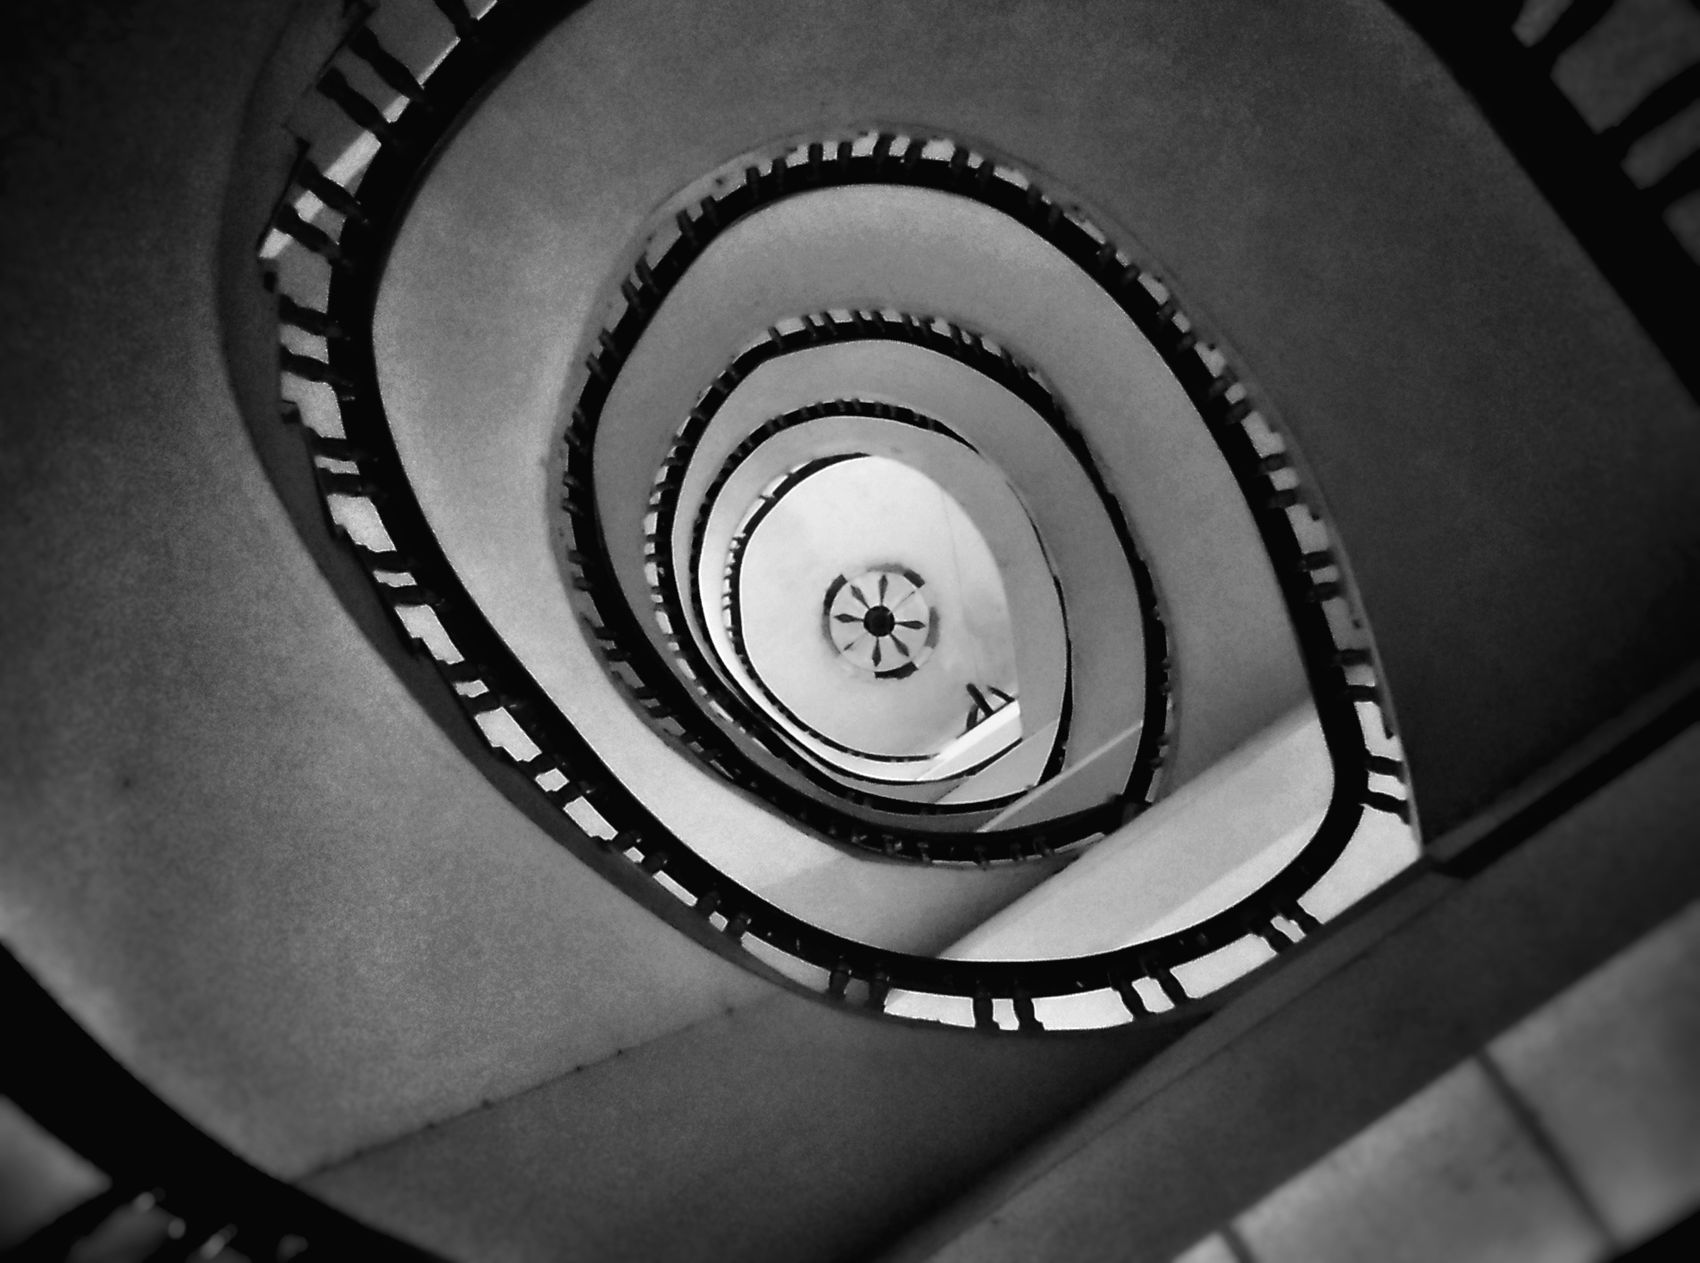 The Spiral Staircase. (Khulna, Bangladesh)- 21-4-2017 Staircase Spiral Steps And Staircases Railing Steps Spiral Stairs Built Structure Architecture Black And White StillLifePhotography StillLife No People Spiral Staircase EyeEm LOST IN London EyeEm Selects Breathing Space EyeEmNewHere The Street Photographer - 2017 EyeEm Awards Stairs People Street Lifestyles Brick Wall Architecture Minimal Composition